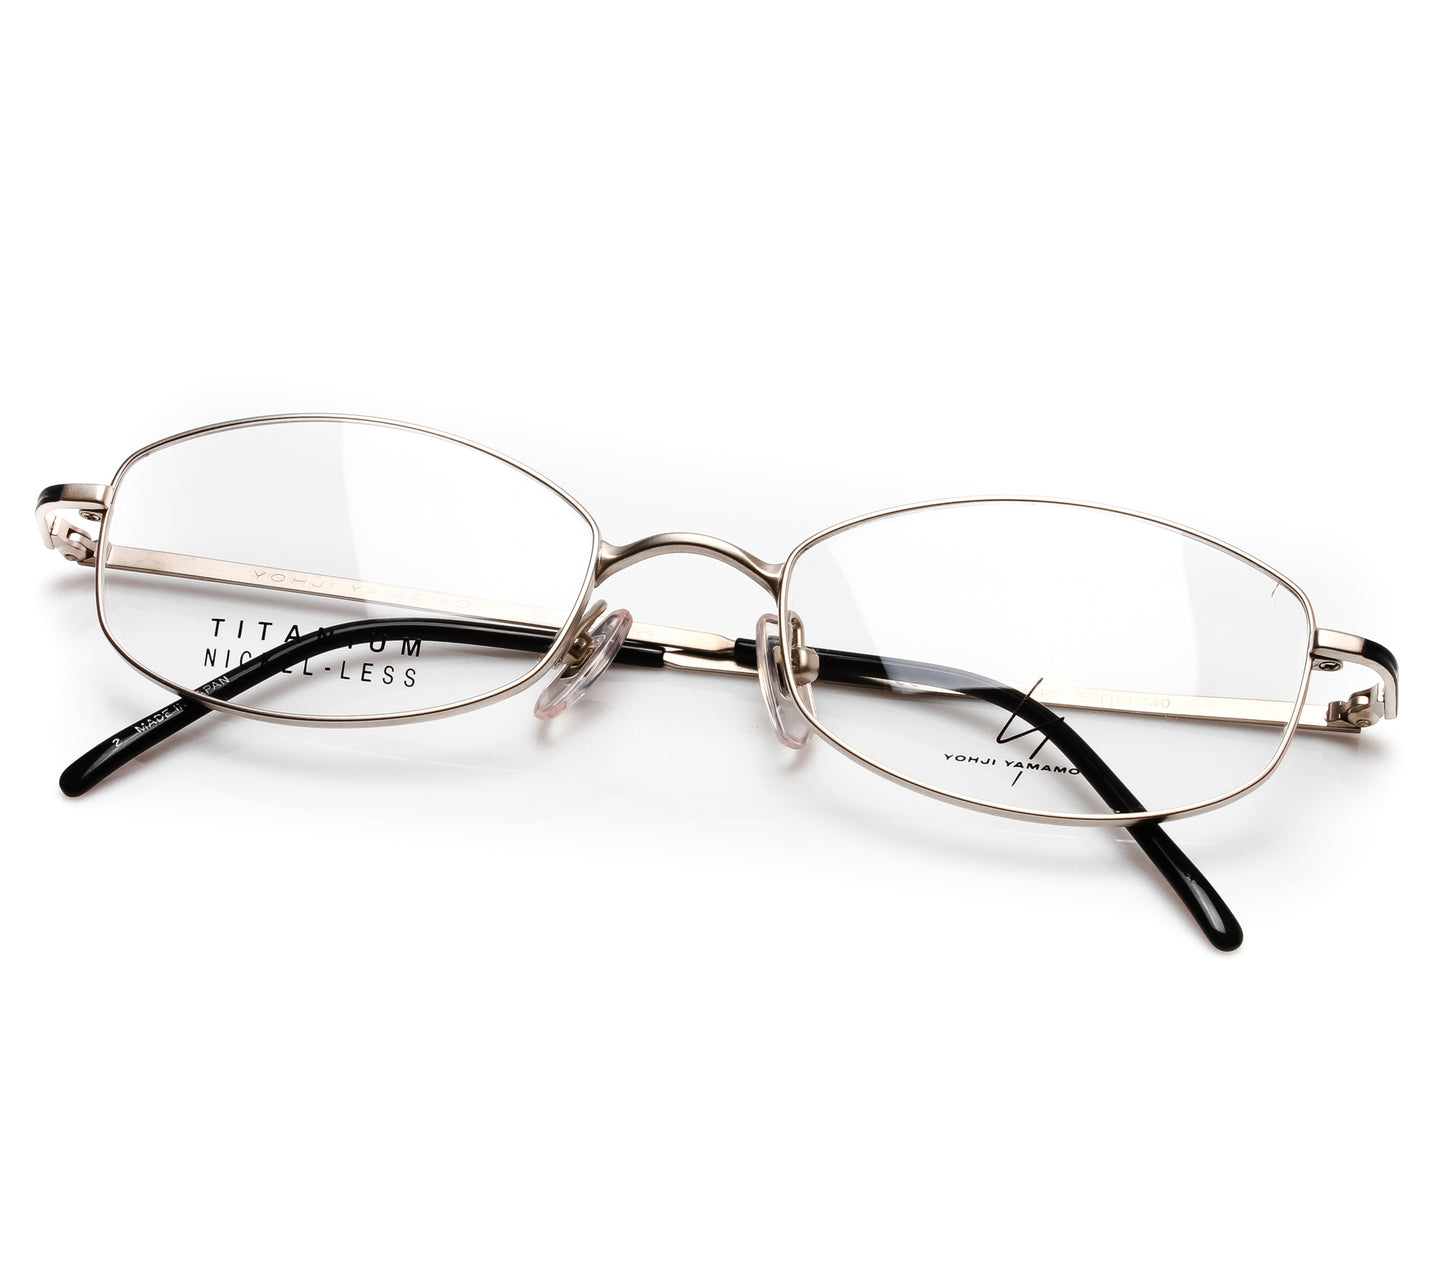 Yohji Yamamoto 51 0012 Col2 Thumbnail, Yohji Yamamoto , glasses frames, eyeglasses online, eyeglass frames, mens glasses, womens glasses, buy glasses online, designer eyeglasses, vintage sunglasses, retro sunglasses, vintage glasses, sunglass, eyeglass, glasses, lens, vintage frames company, vf